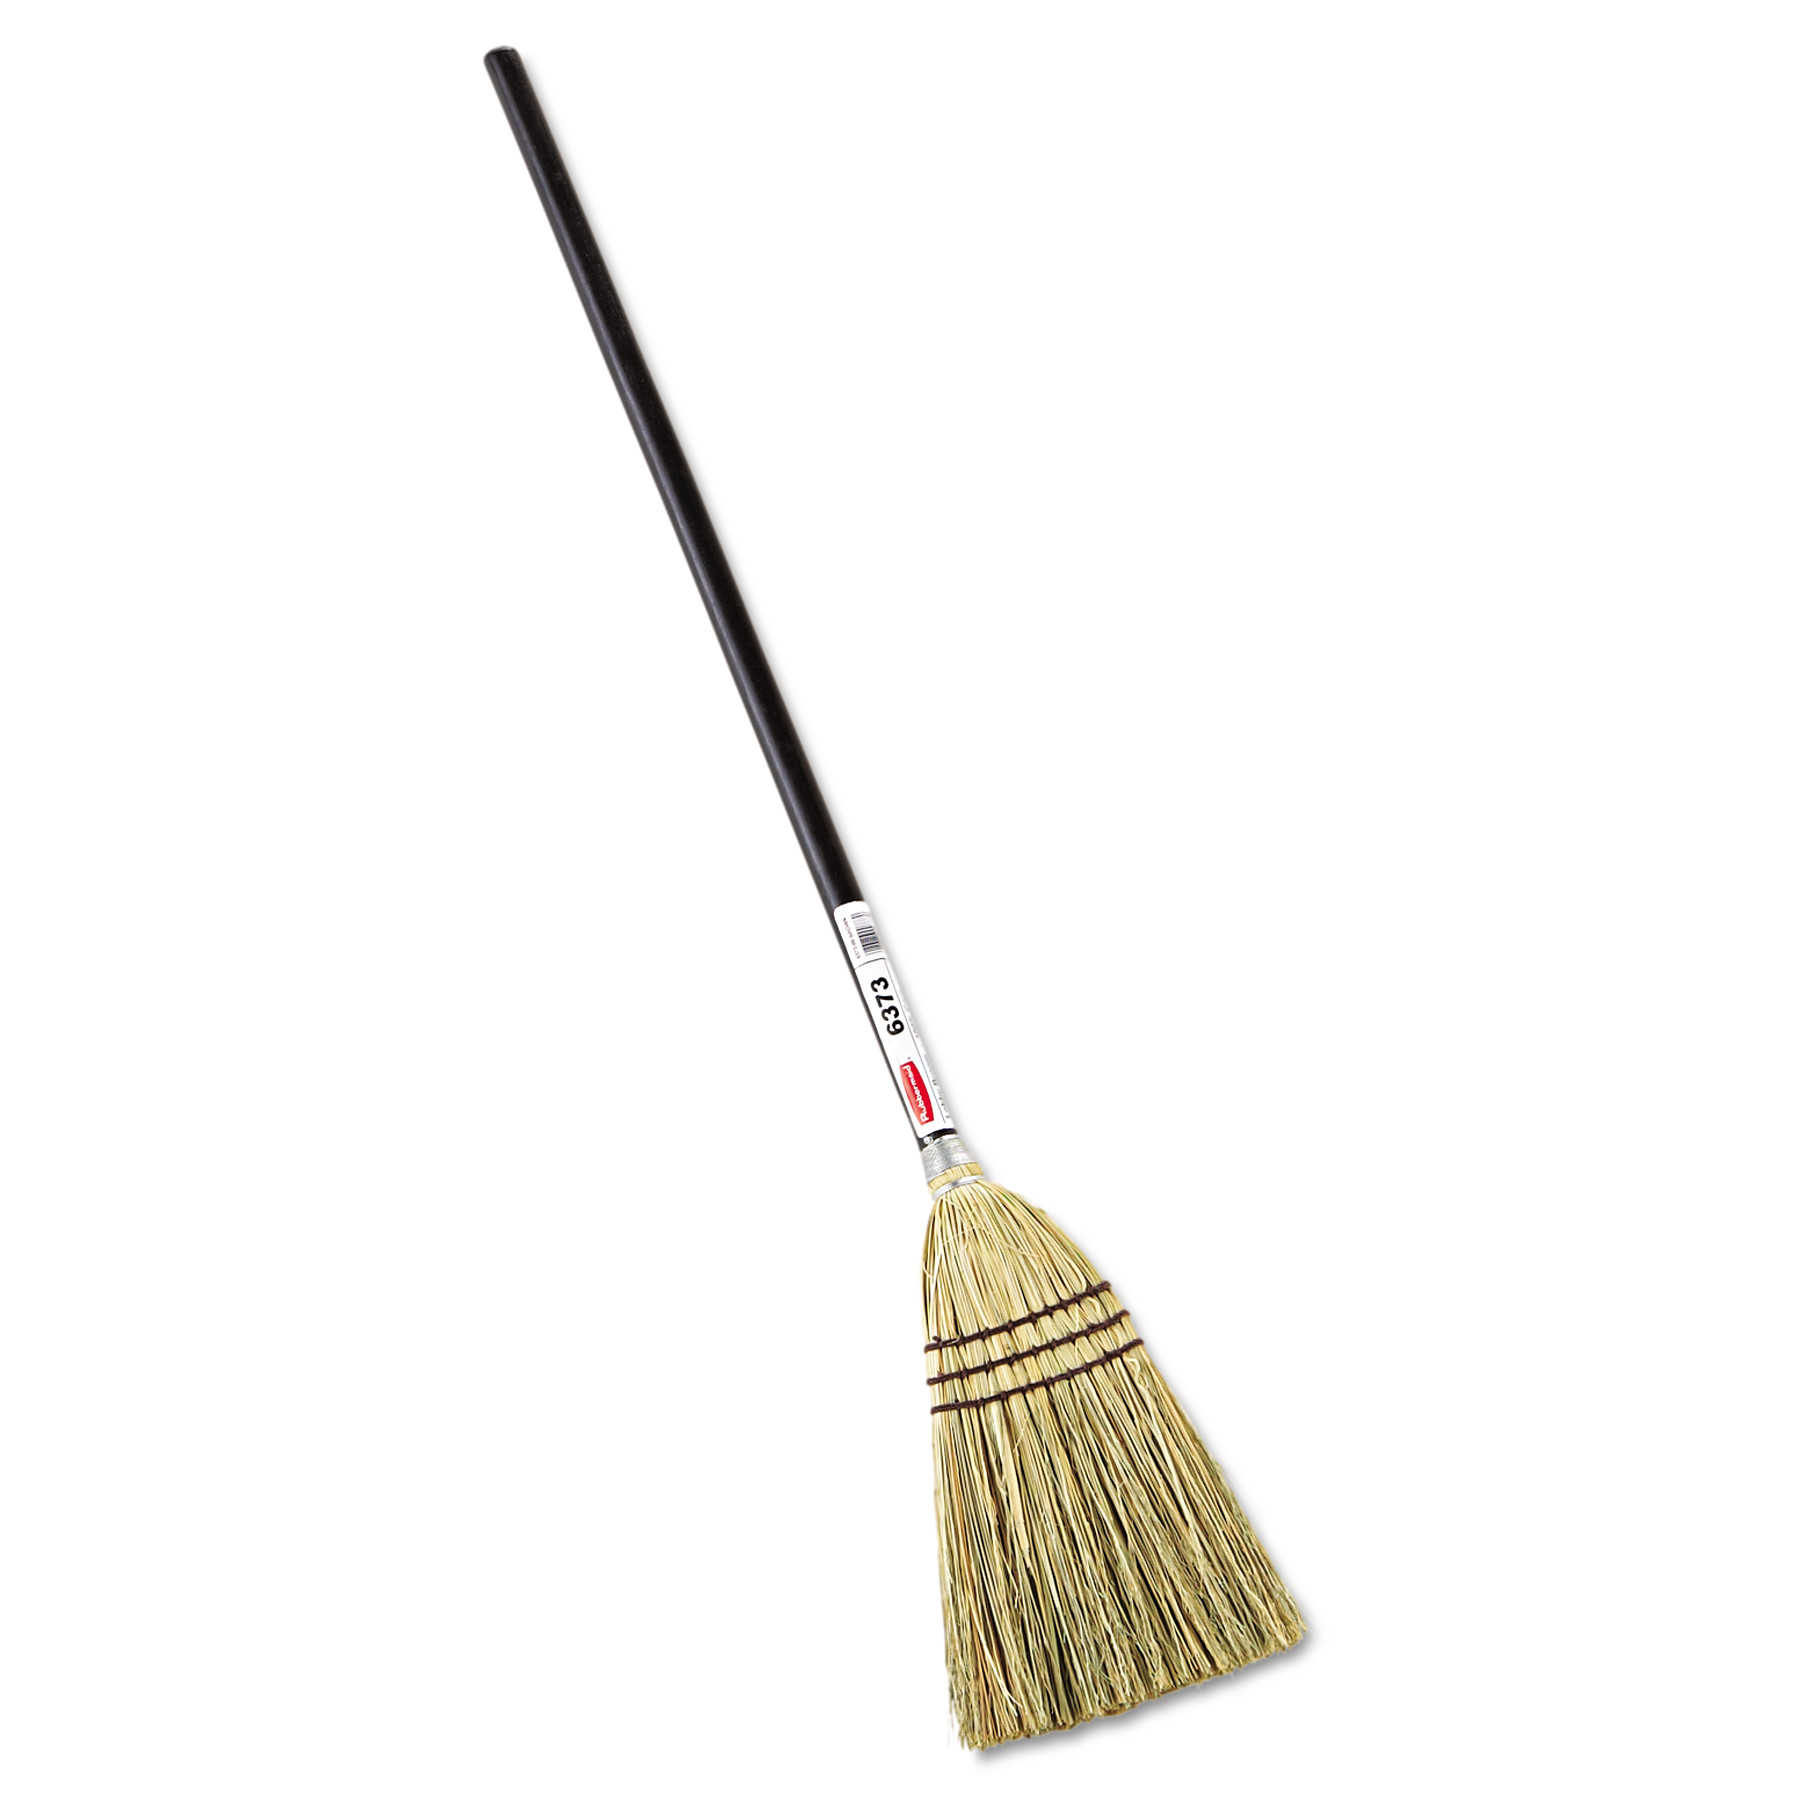 "Rubbermaid Commercial Lobby 38"" Handle Corn-Fill Broom, Brown by RUBBERMAID COMMERCIAL PROD."